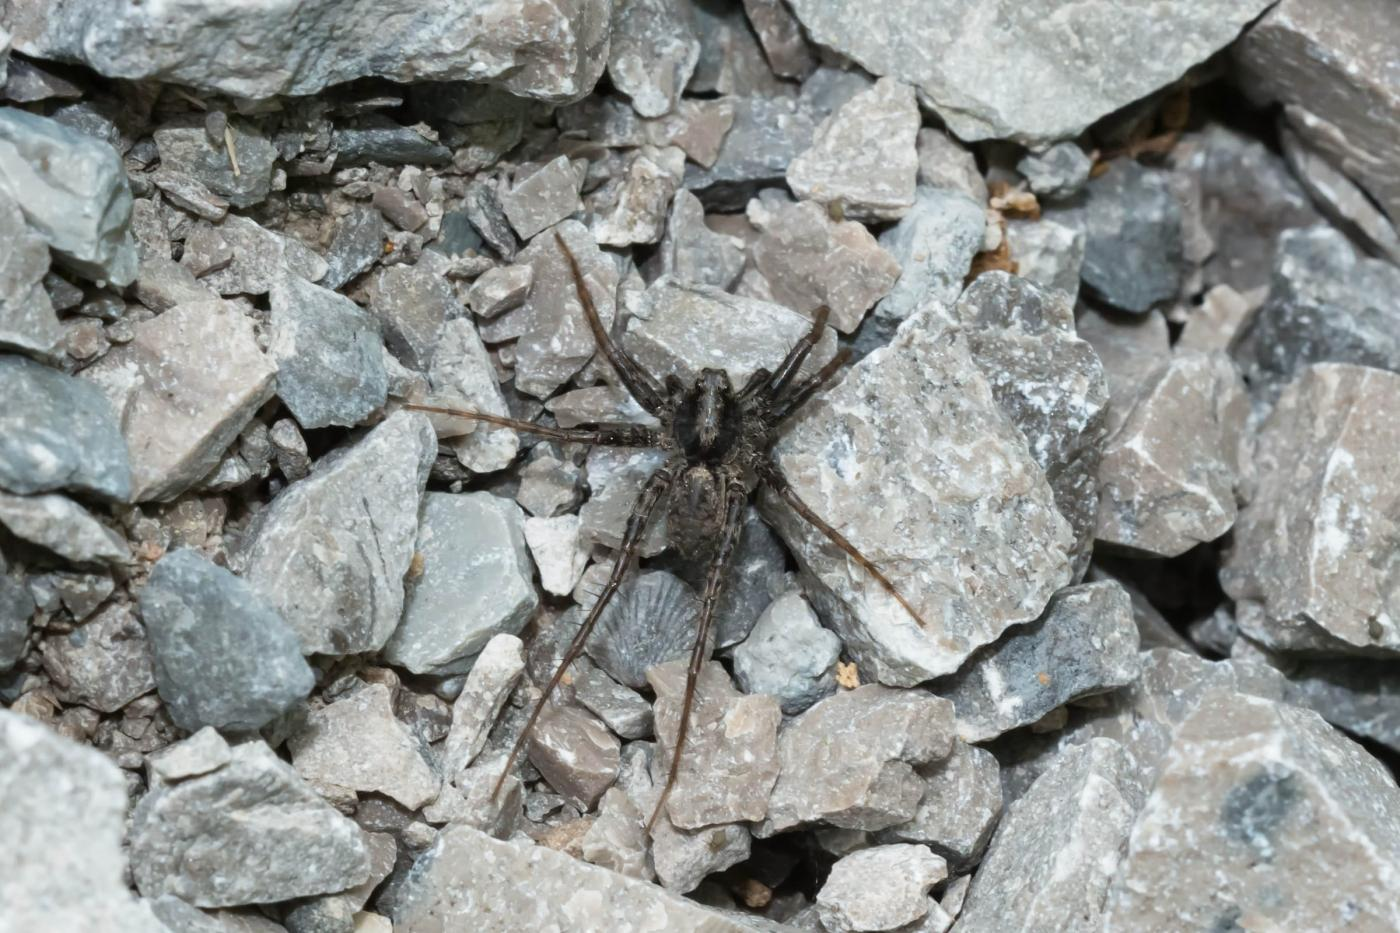 A Thin-legged Wolf Spider is resting on a gravel path_Photo by Paul Reeves Photography